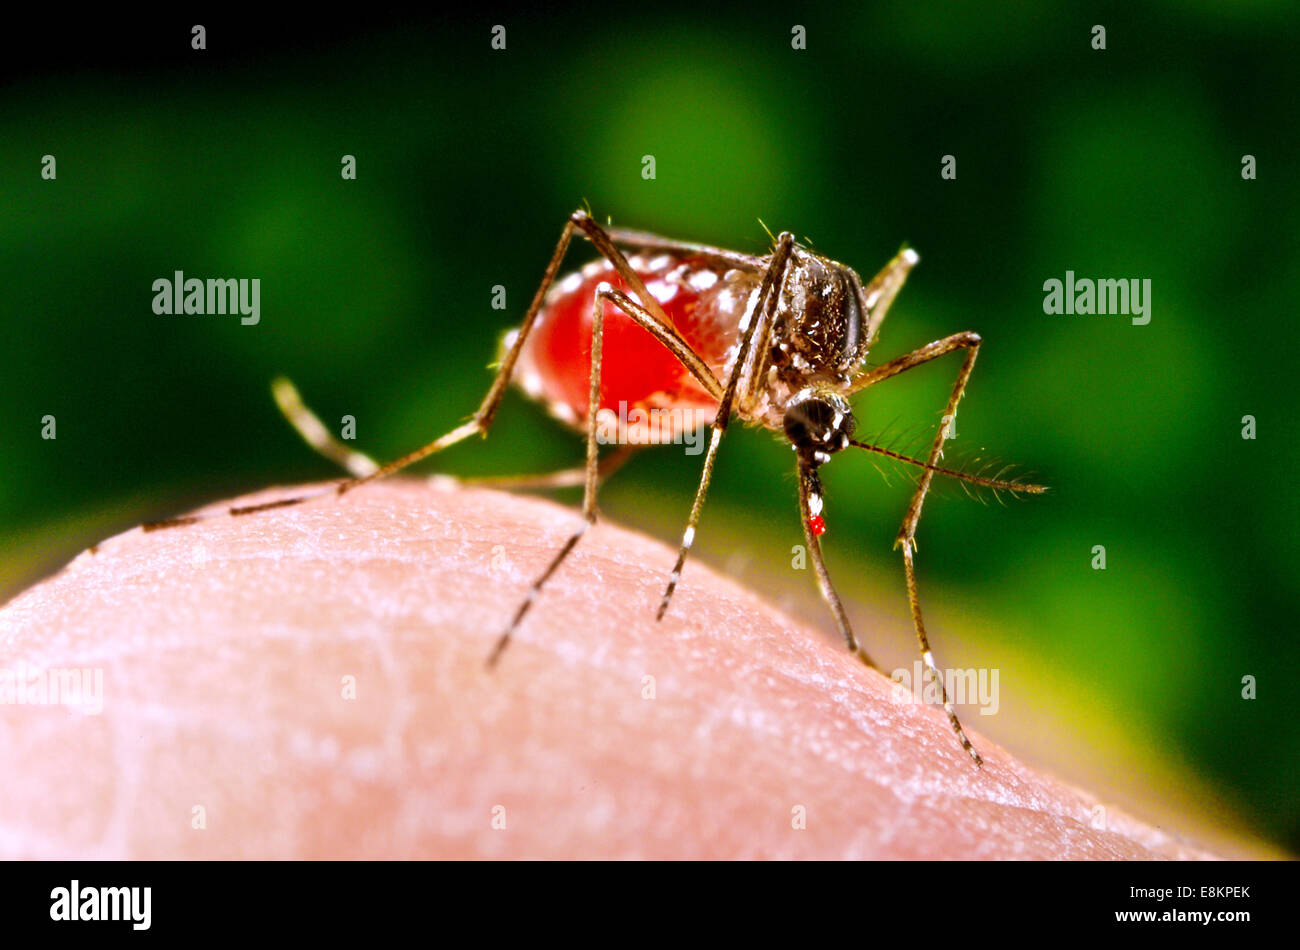 This image depicted female Aedes aegypti mosquito as she was completing activity of obtaining blood-meal from human - Stock Image